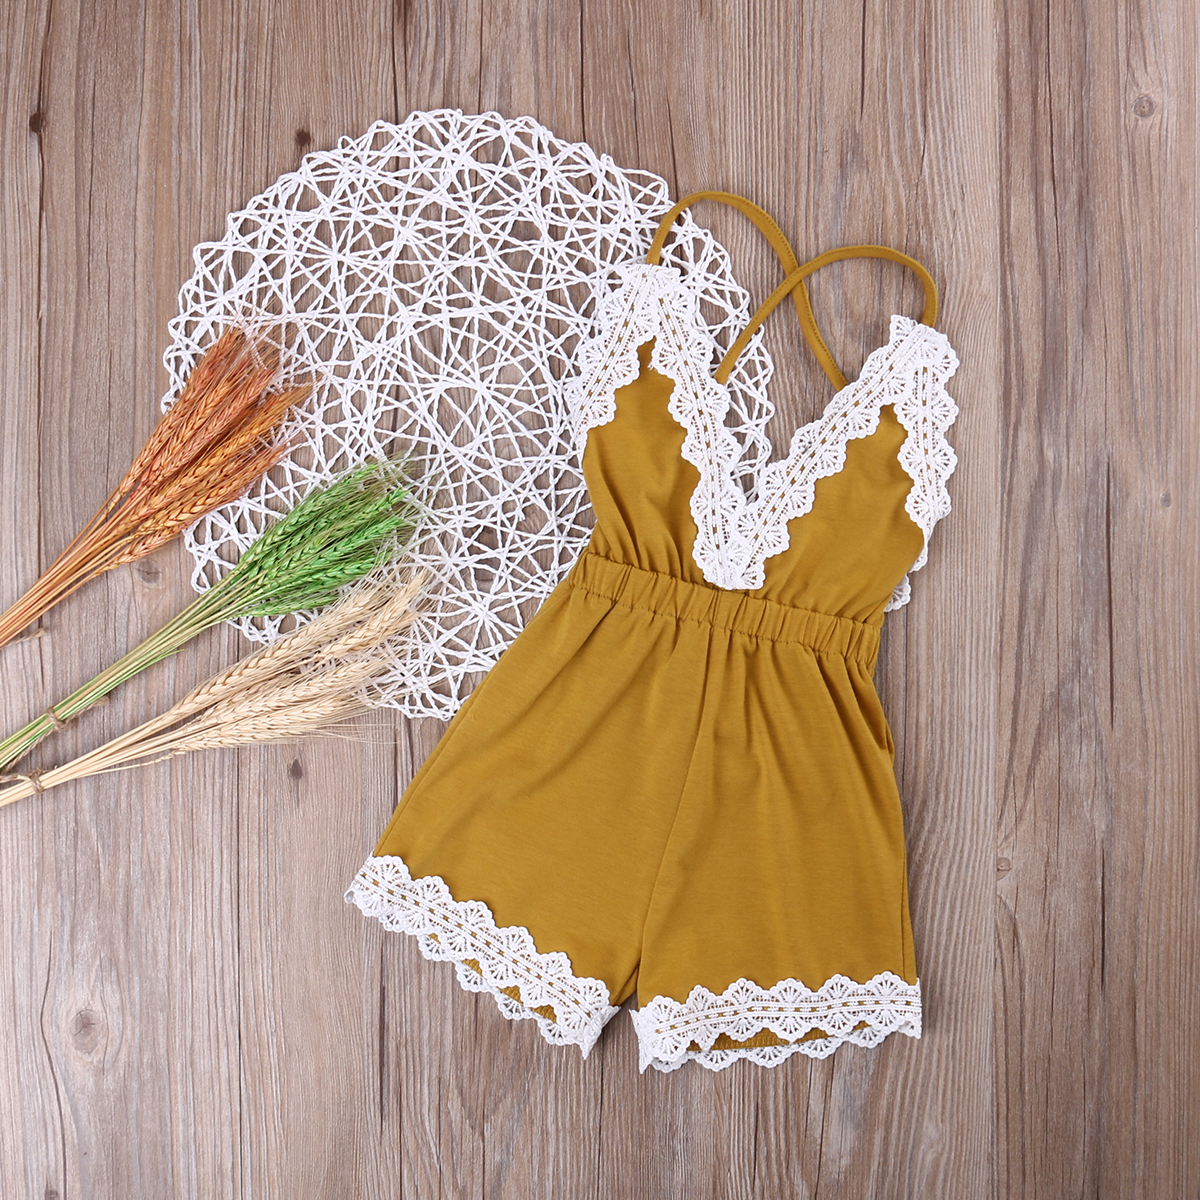 Adorable Newborn Baby Girls Clothing Romper Sleeveless Backless V Neck Jumpsuit Flower Outfits Clothes New виниловая пластинка boots aquaria